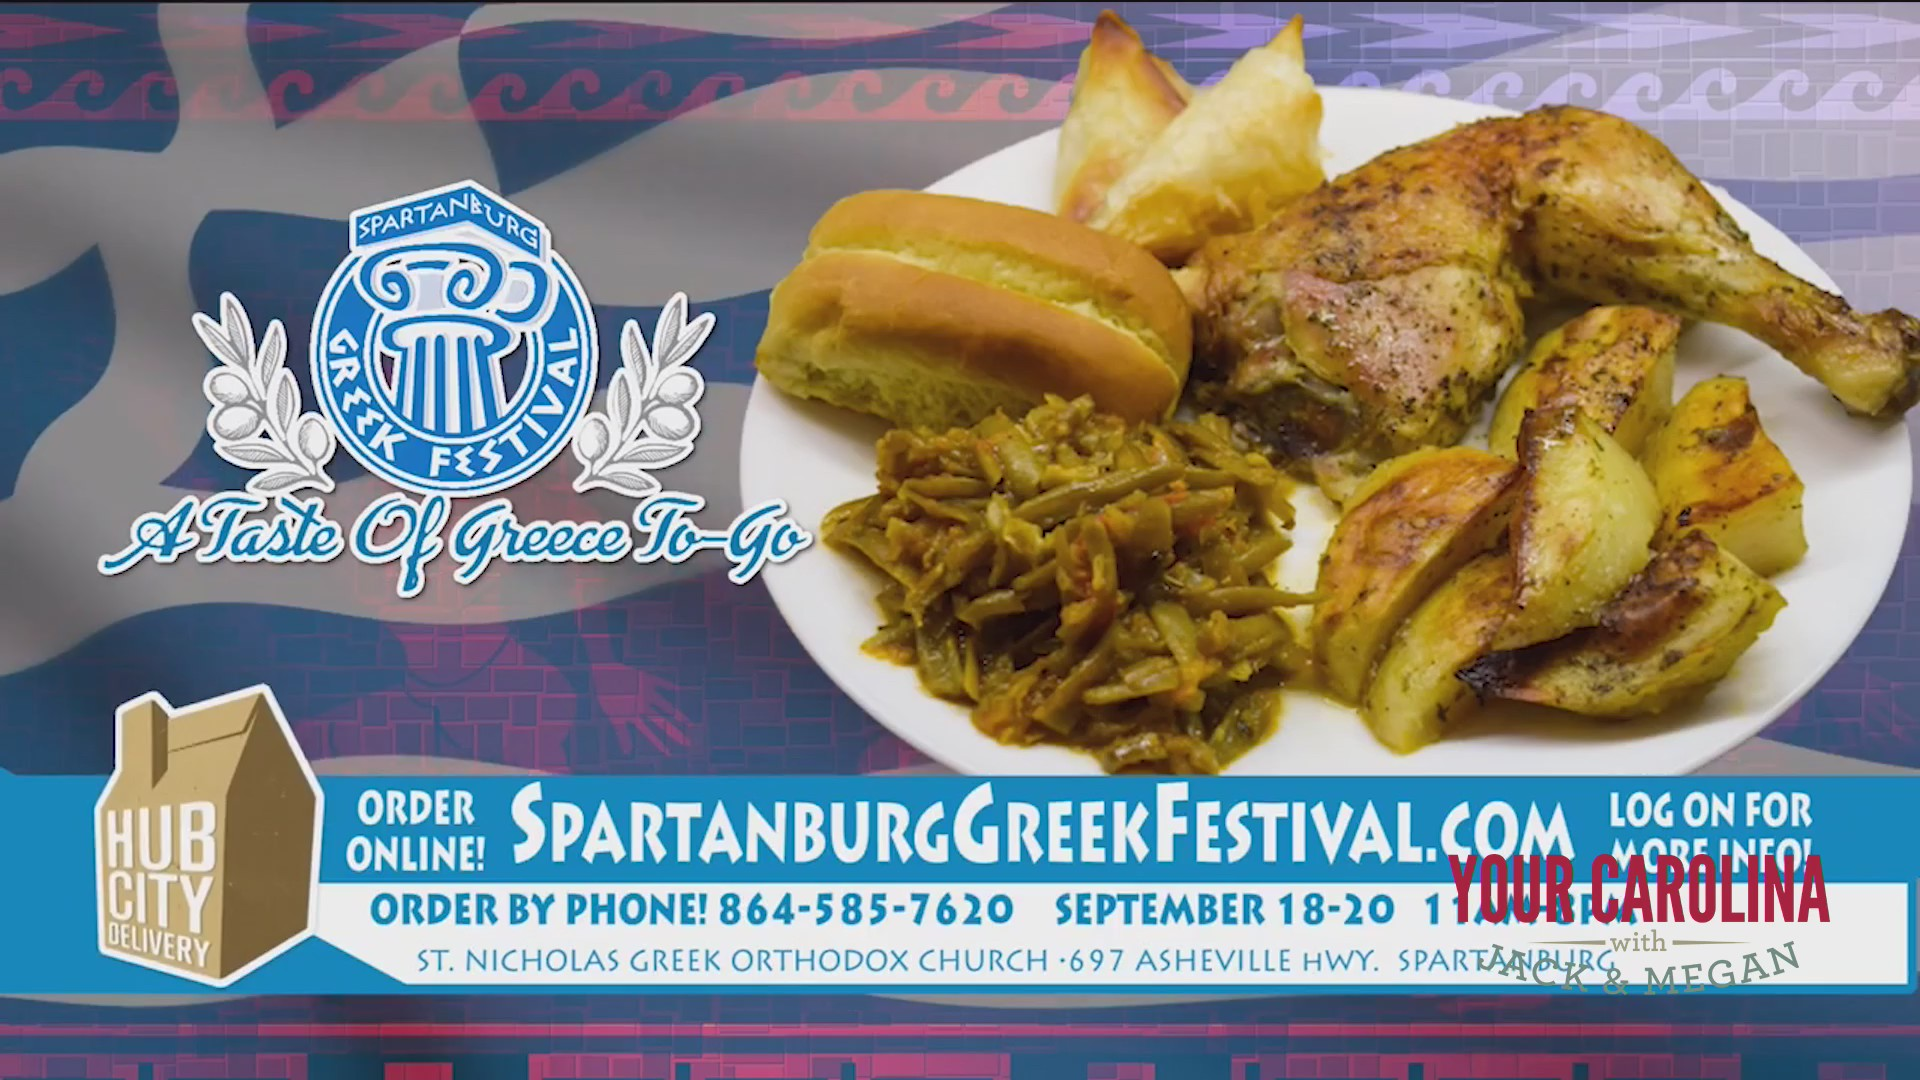 Spartanburg Greek Festival 2020